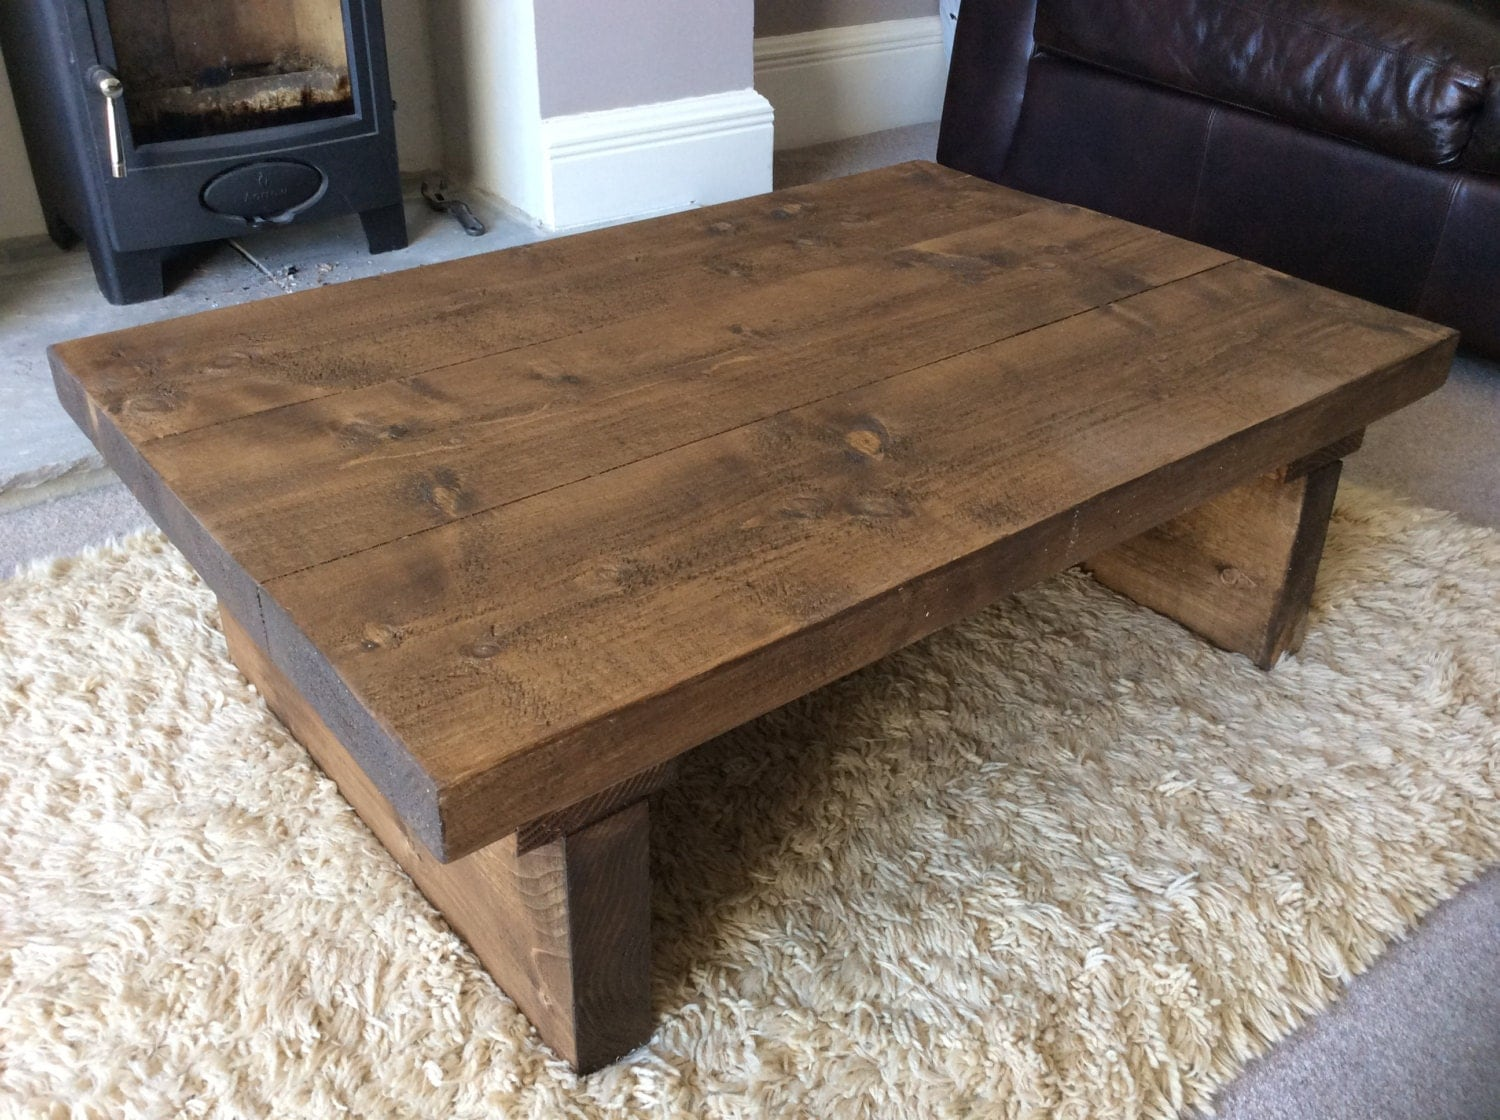 Rustic Handcrafted Reclaimed Wooden Coffee Table In Walnut